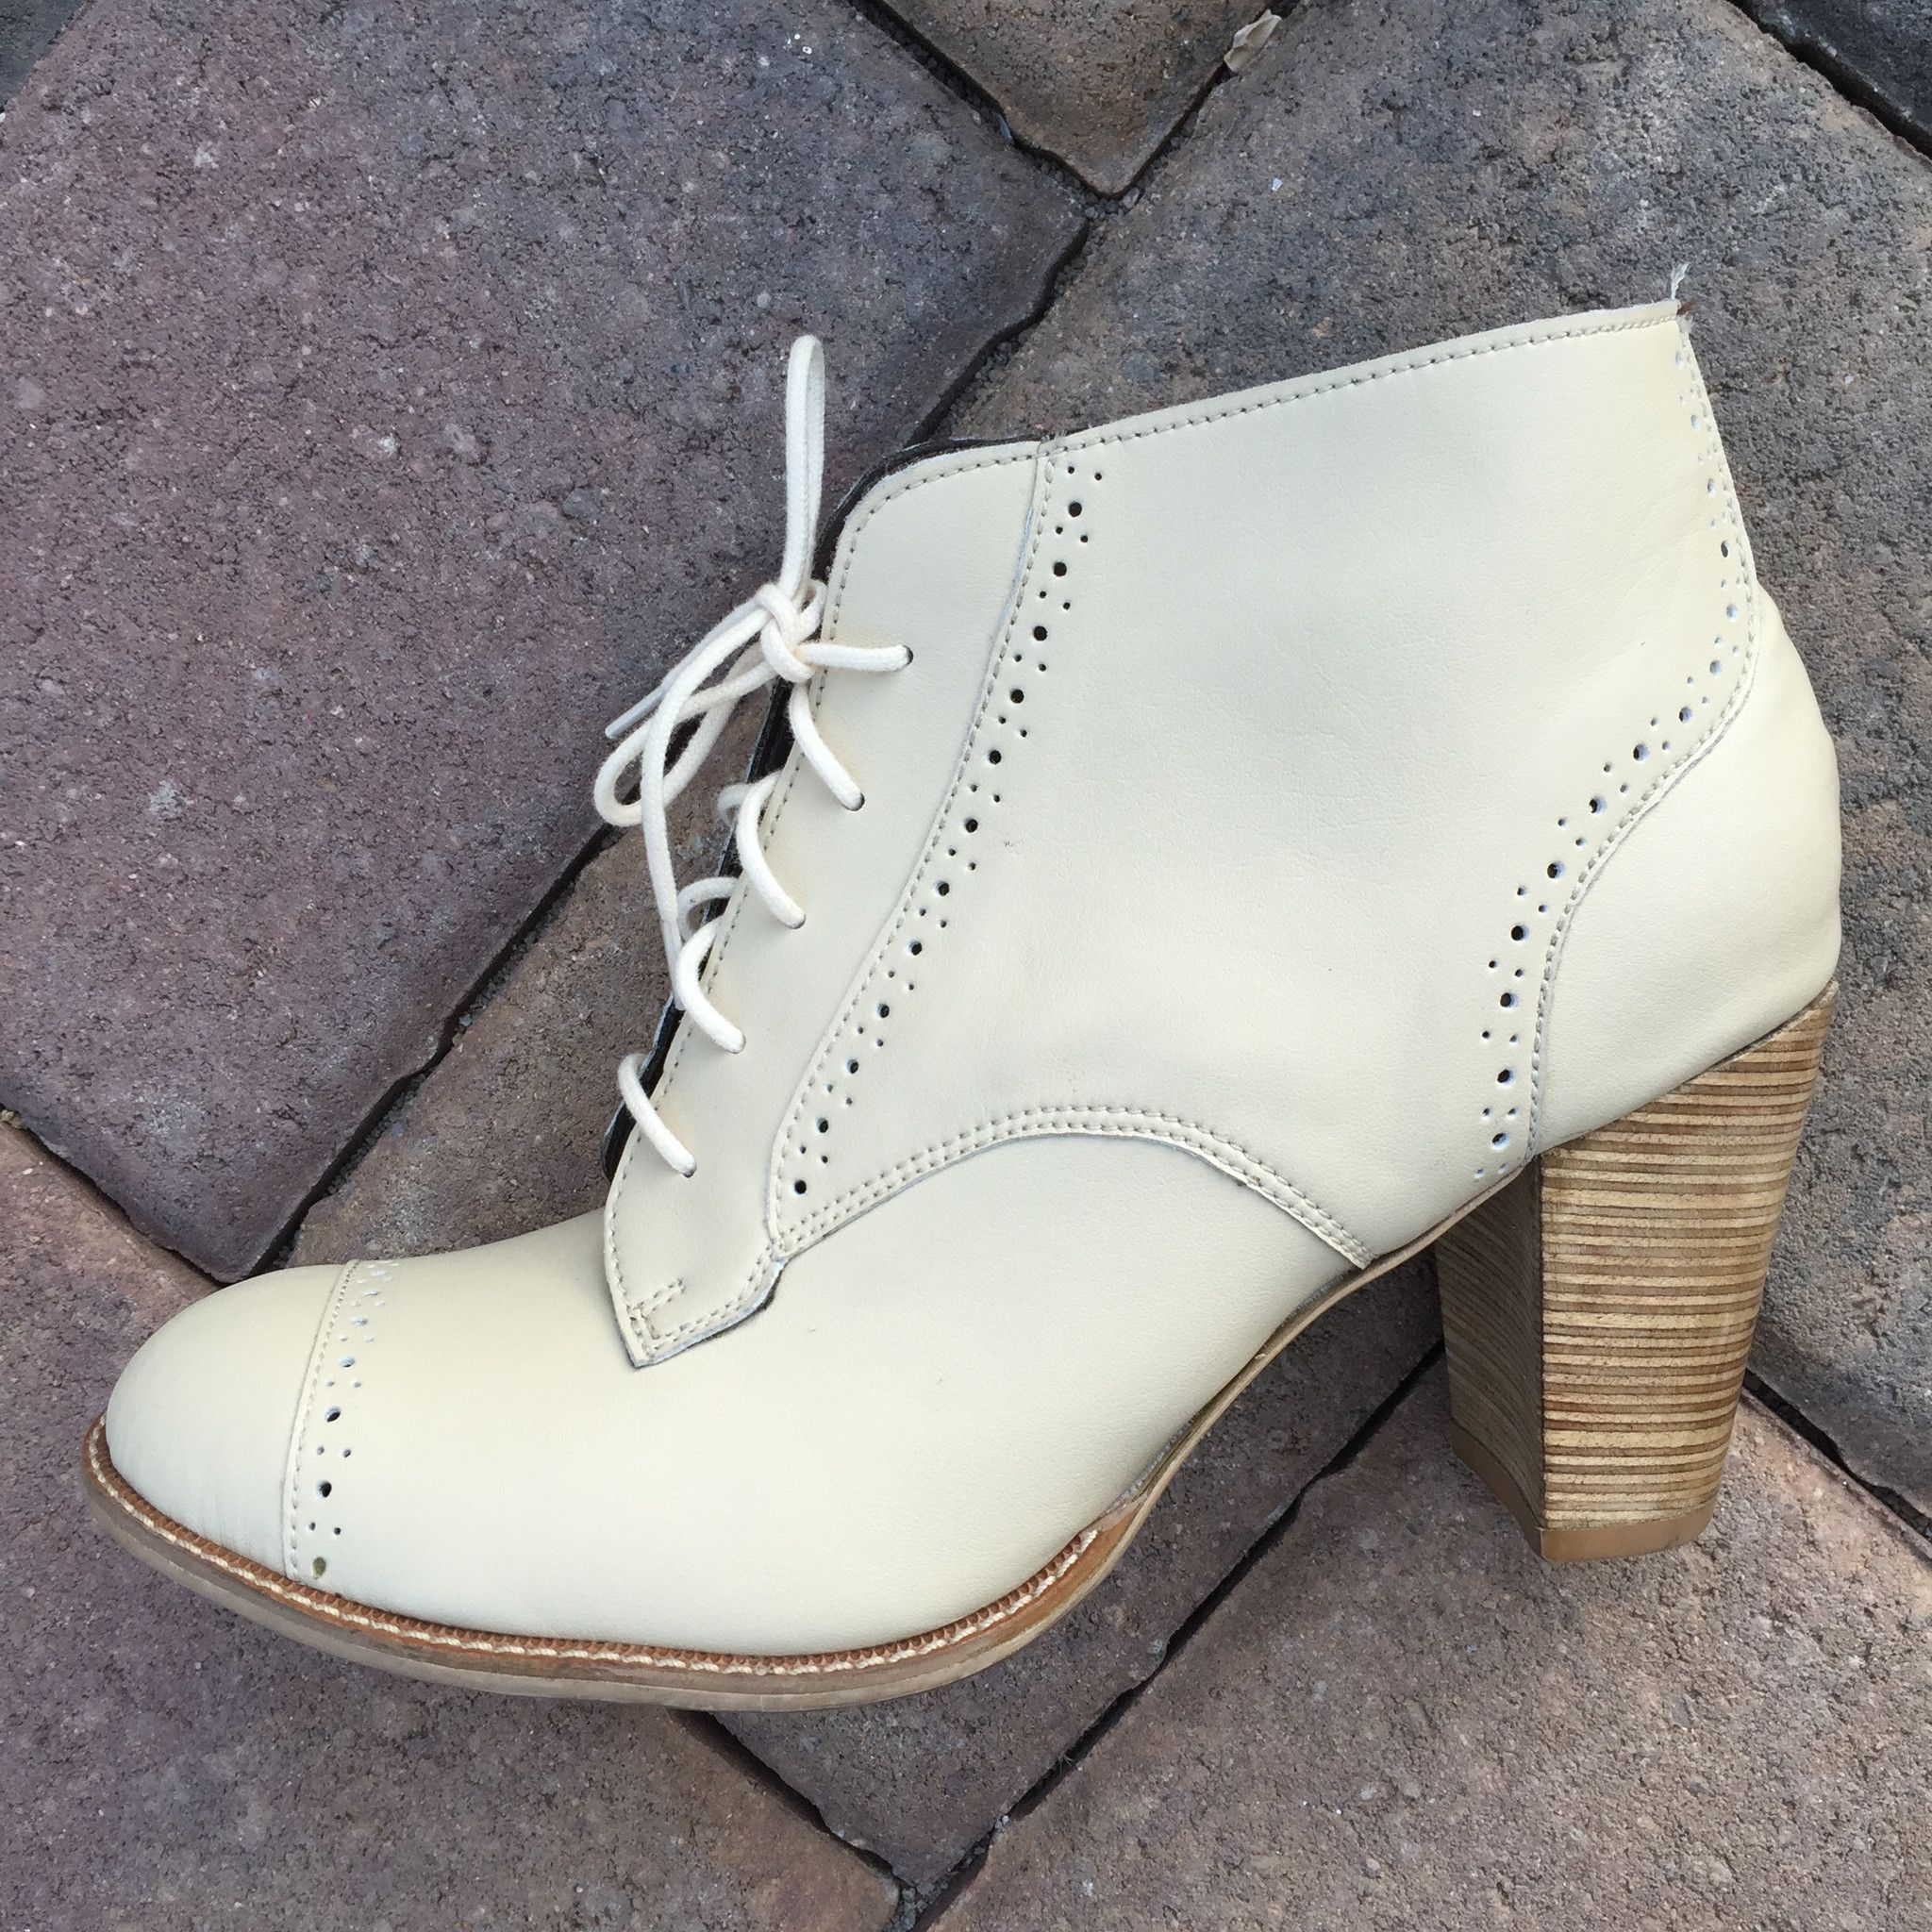 PRE ORDER WILLOW BOOTS: Production starts when funded (12